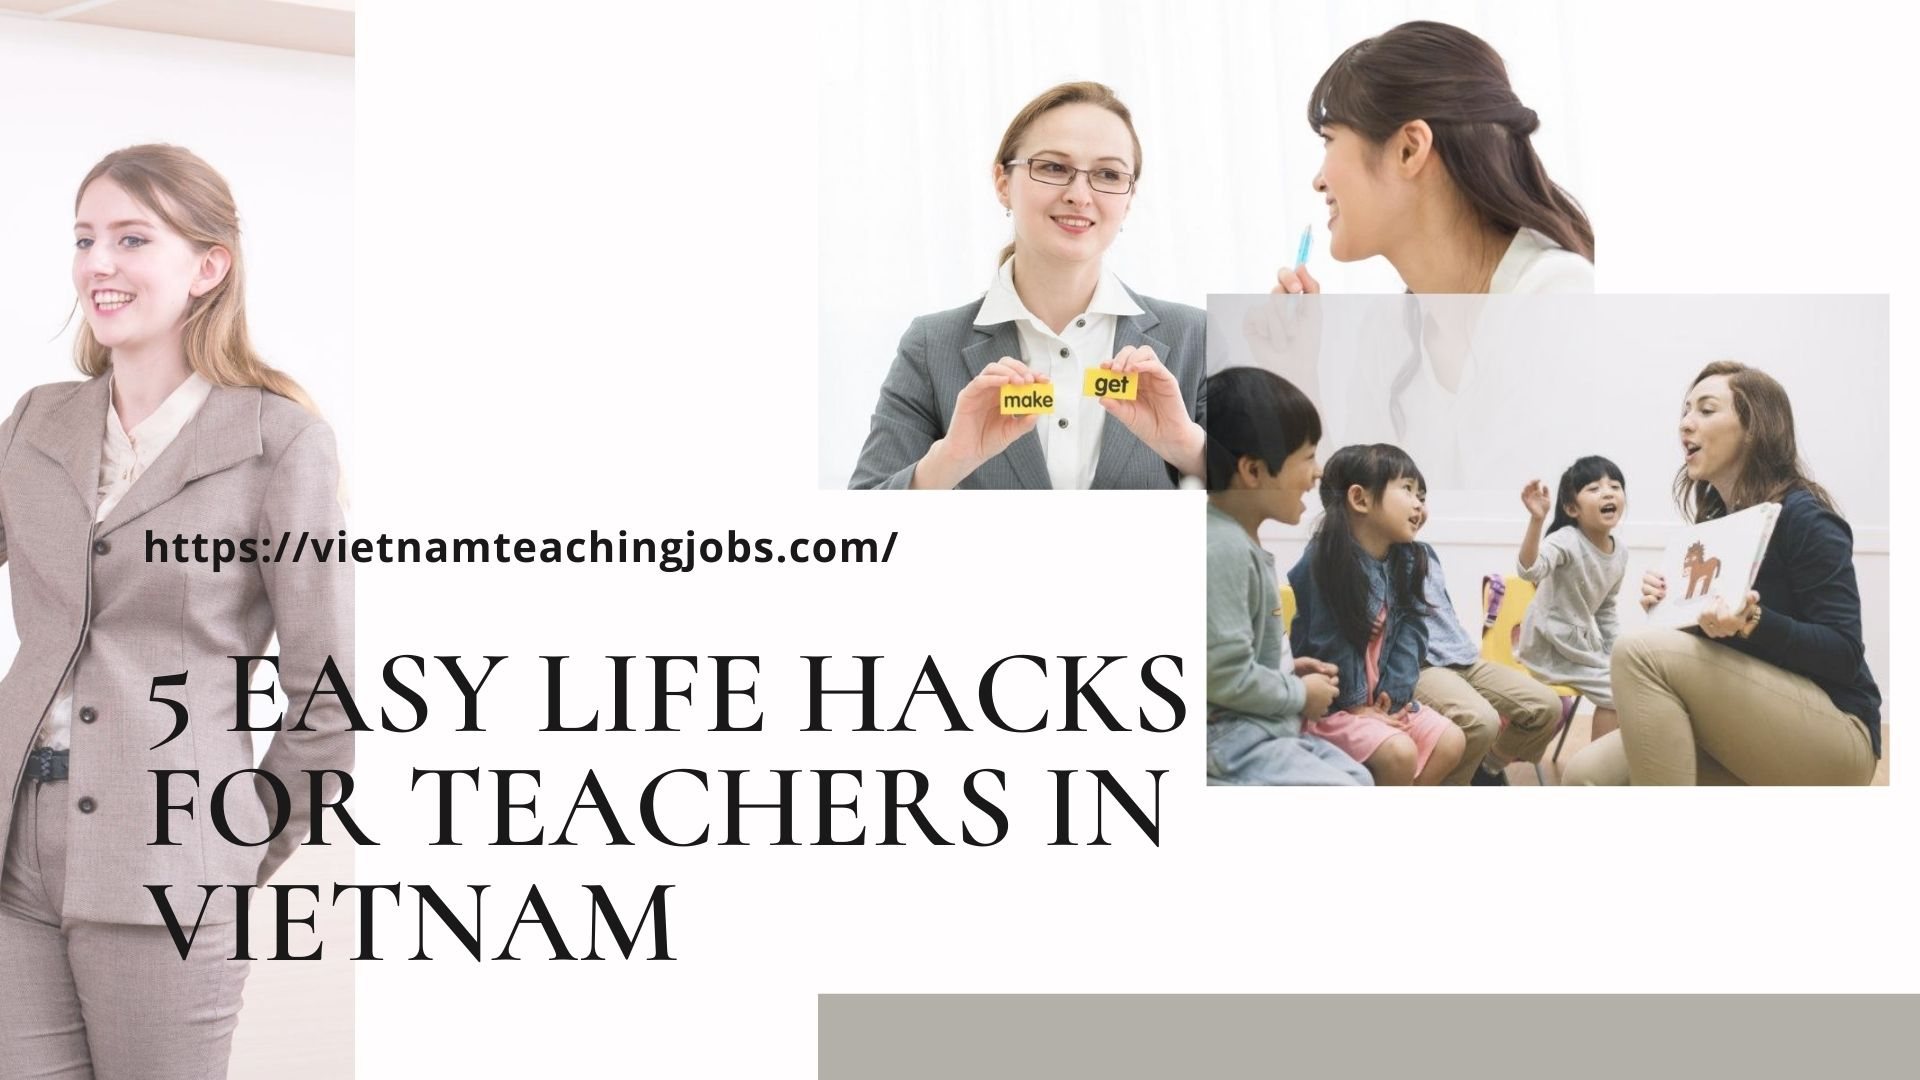 5 EASY LIFE HACKS FOR ESL TEACHERS IN VIETNAM